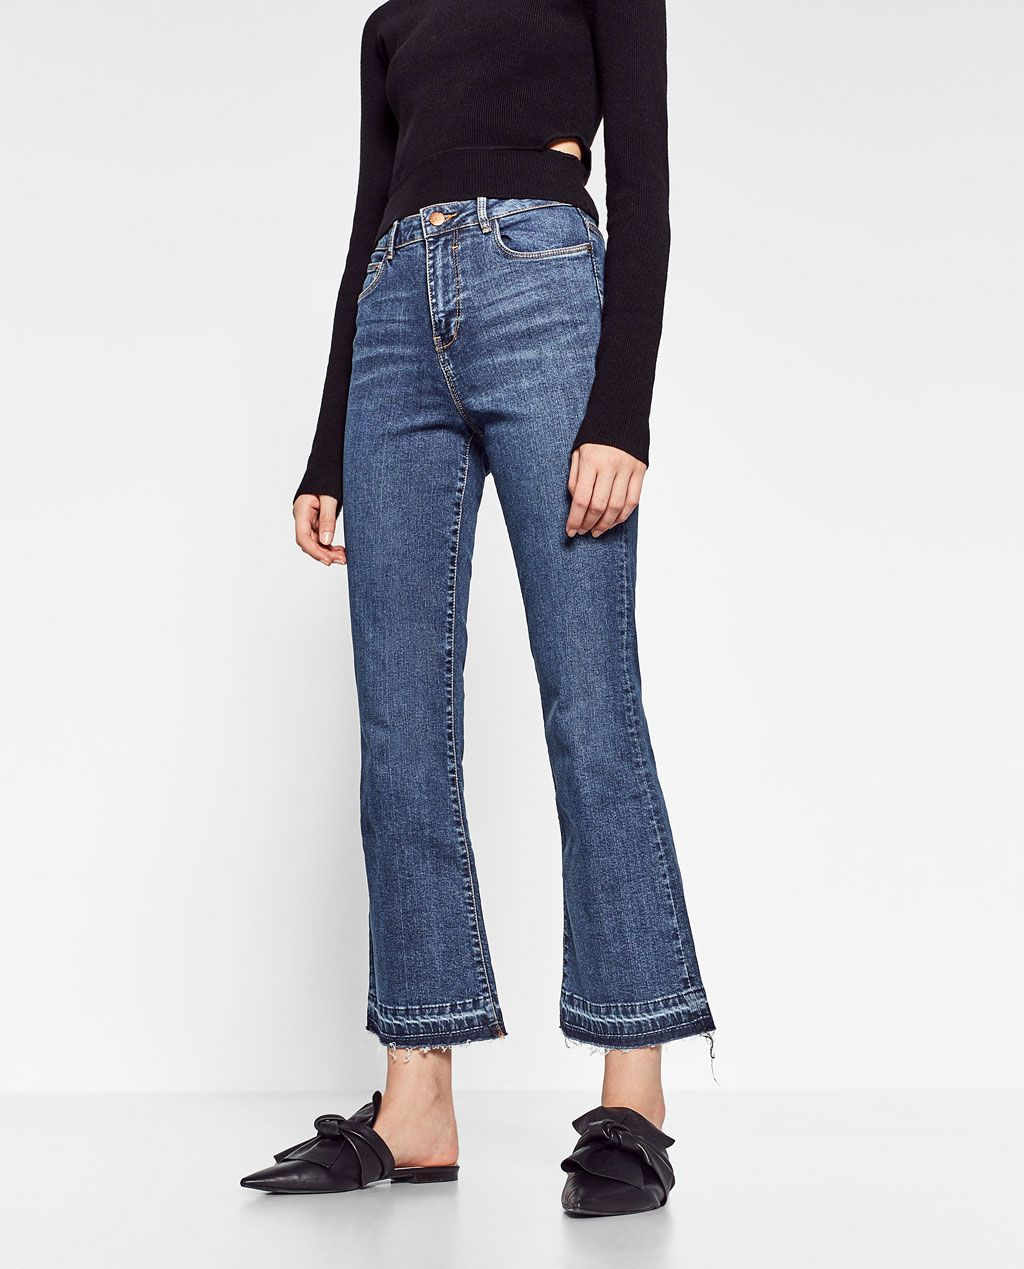 e93298e6623af1 ZARA - WOMAN - MINI FLARE JEANS | Closet wishes | Jeans, Fashion ...